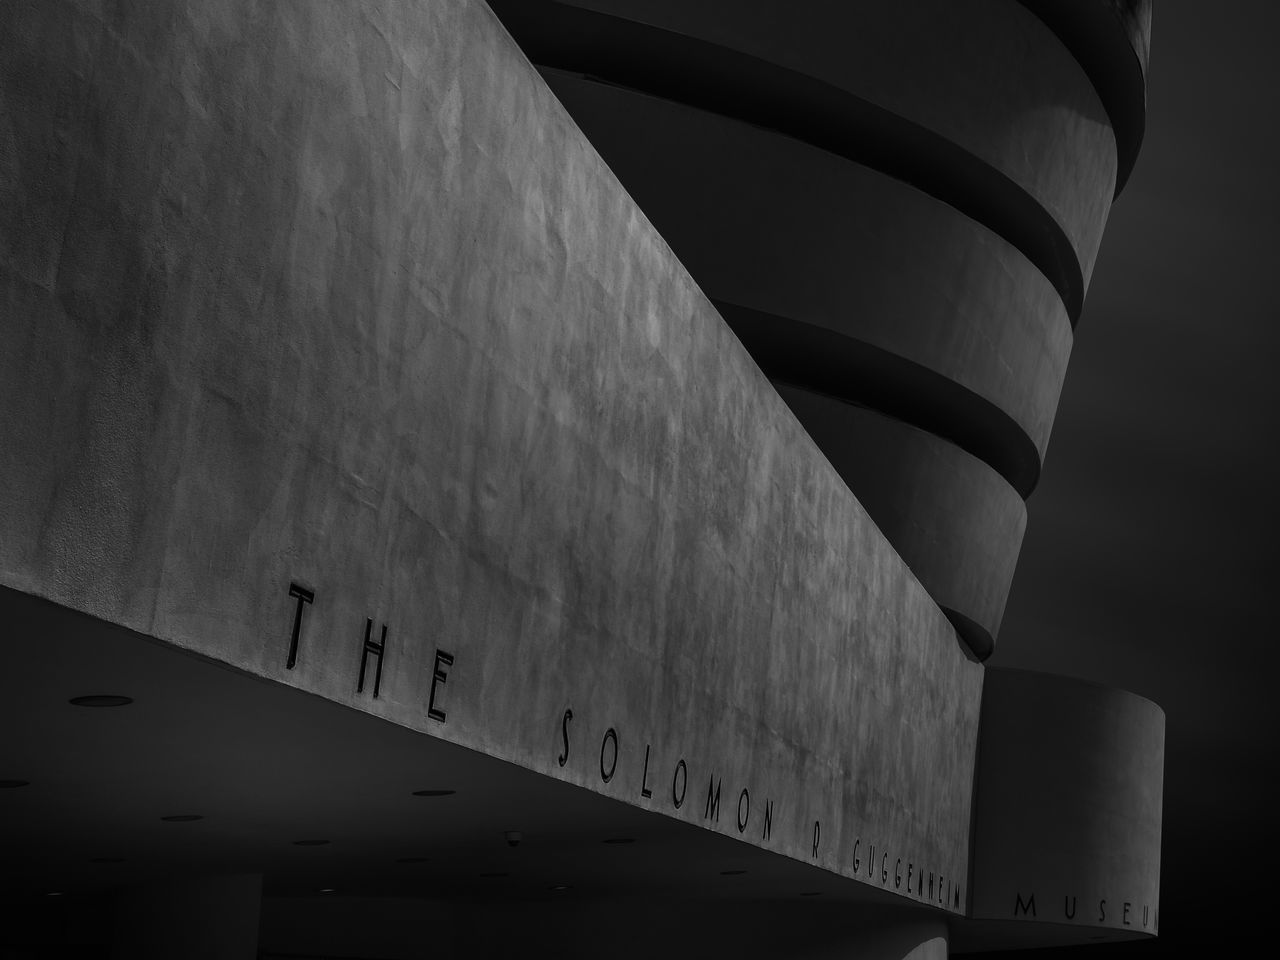 The Guggenheim Museum, NYC, as Fine Art Black & White Image. Architecture Built Structure Close-up Day Fine Art Fine Art Photography Fineart Fineartphotography Guggenheim Guggenheim Museum Guggenheim Nyc Guggenheimmuseum Low Angle View No People Outdoors Sky Solomon R. Guggenheim Museum